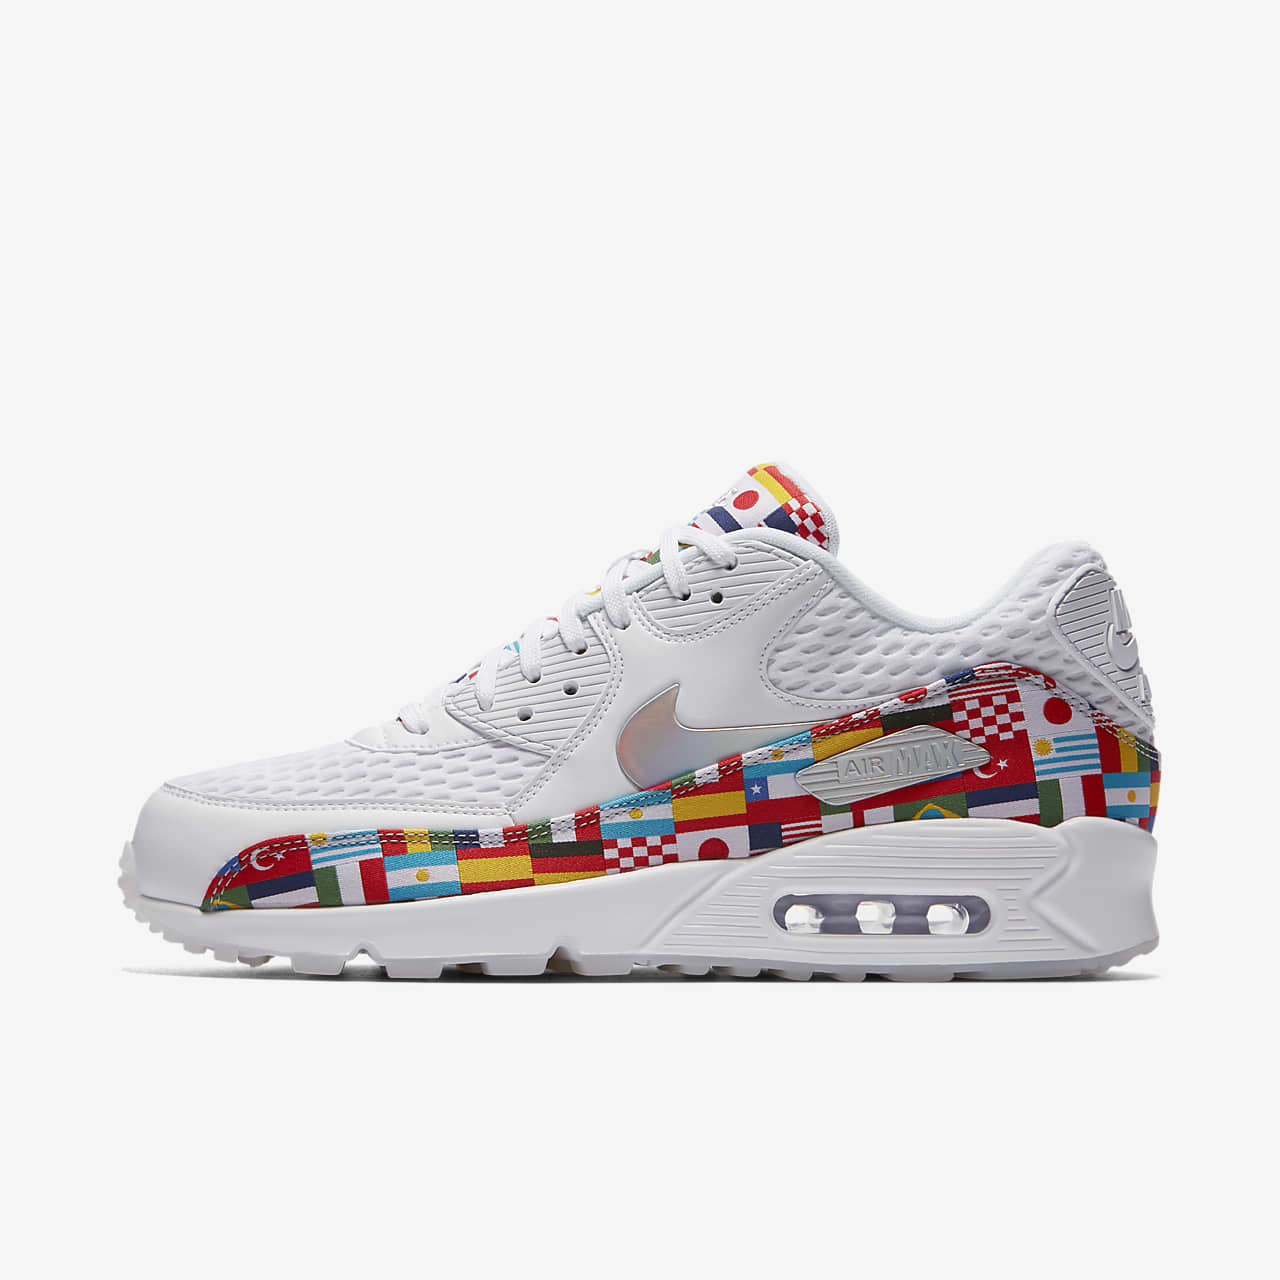 Nike Air Max 90 NIC Men's Shoe